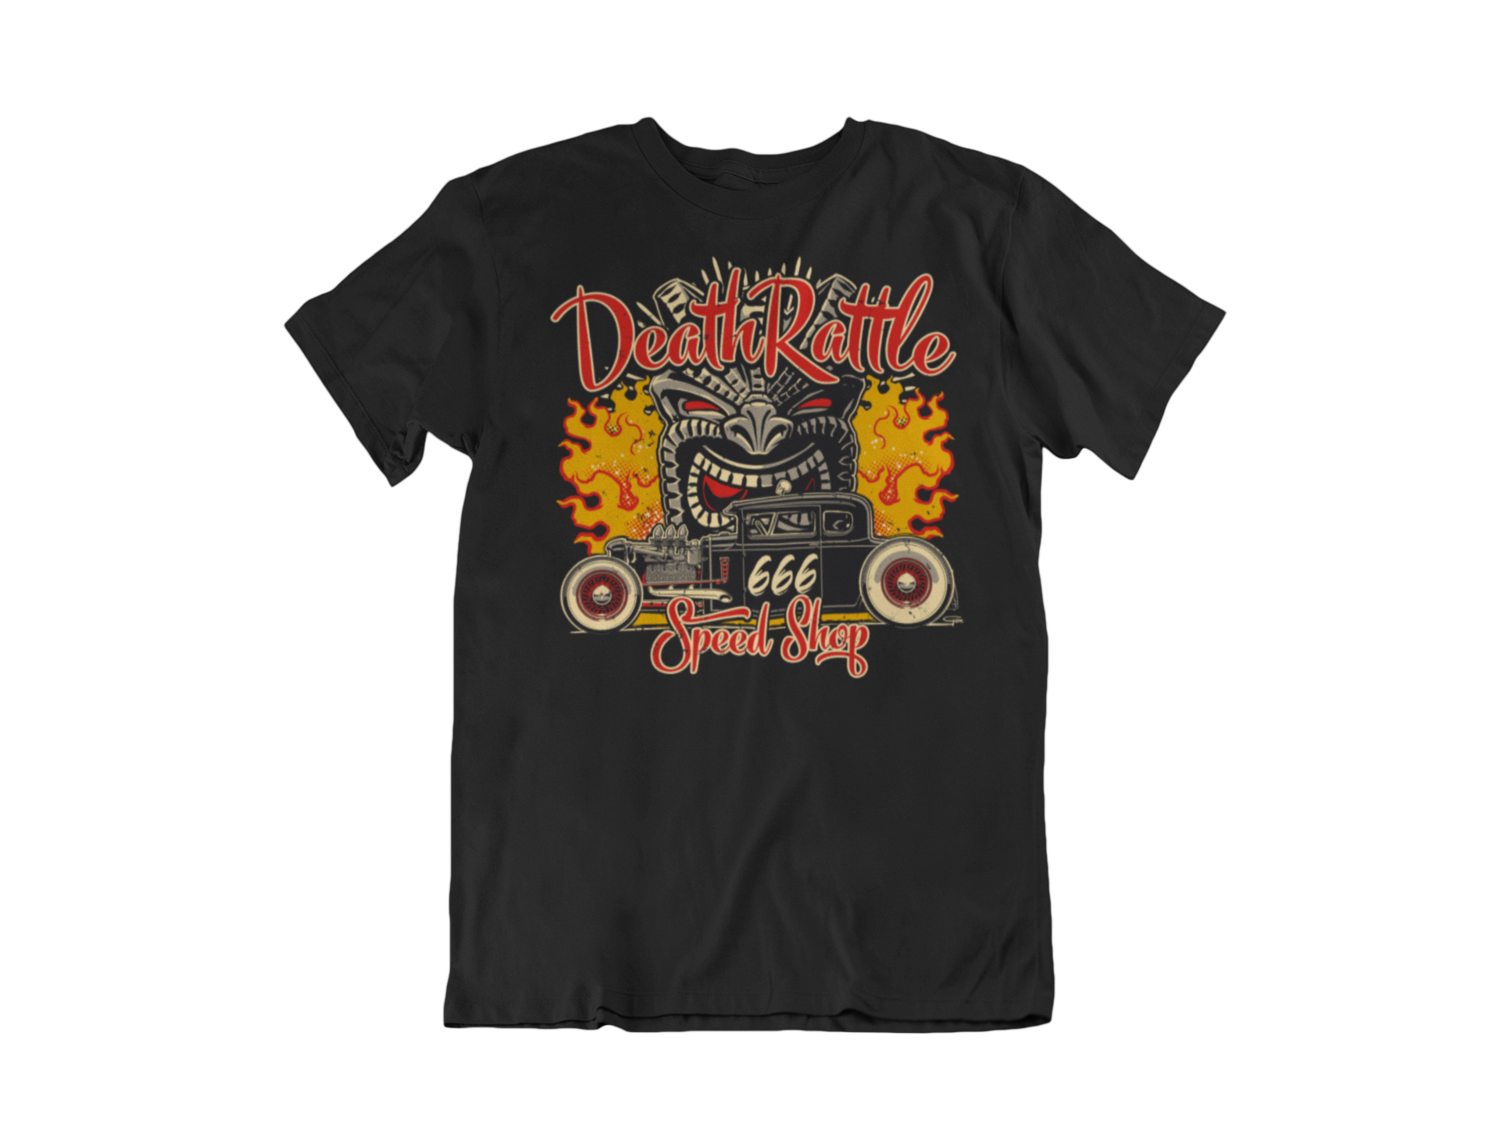 "DEATH RATTLE SPEEDSHOP T-SHIRT MAN BY Ger ""Dutch Courage"" Peters artwork"